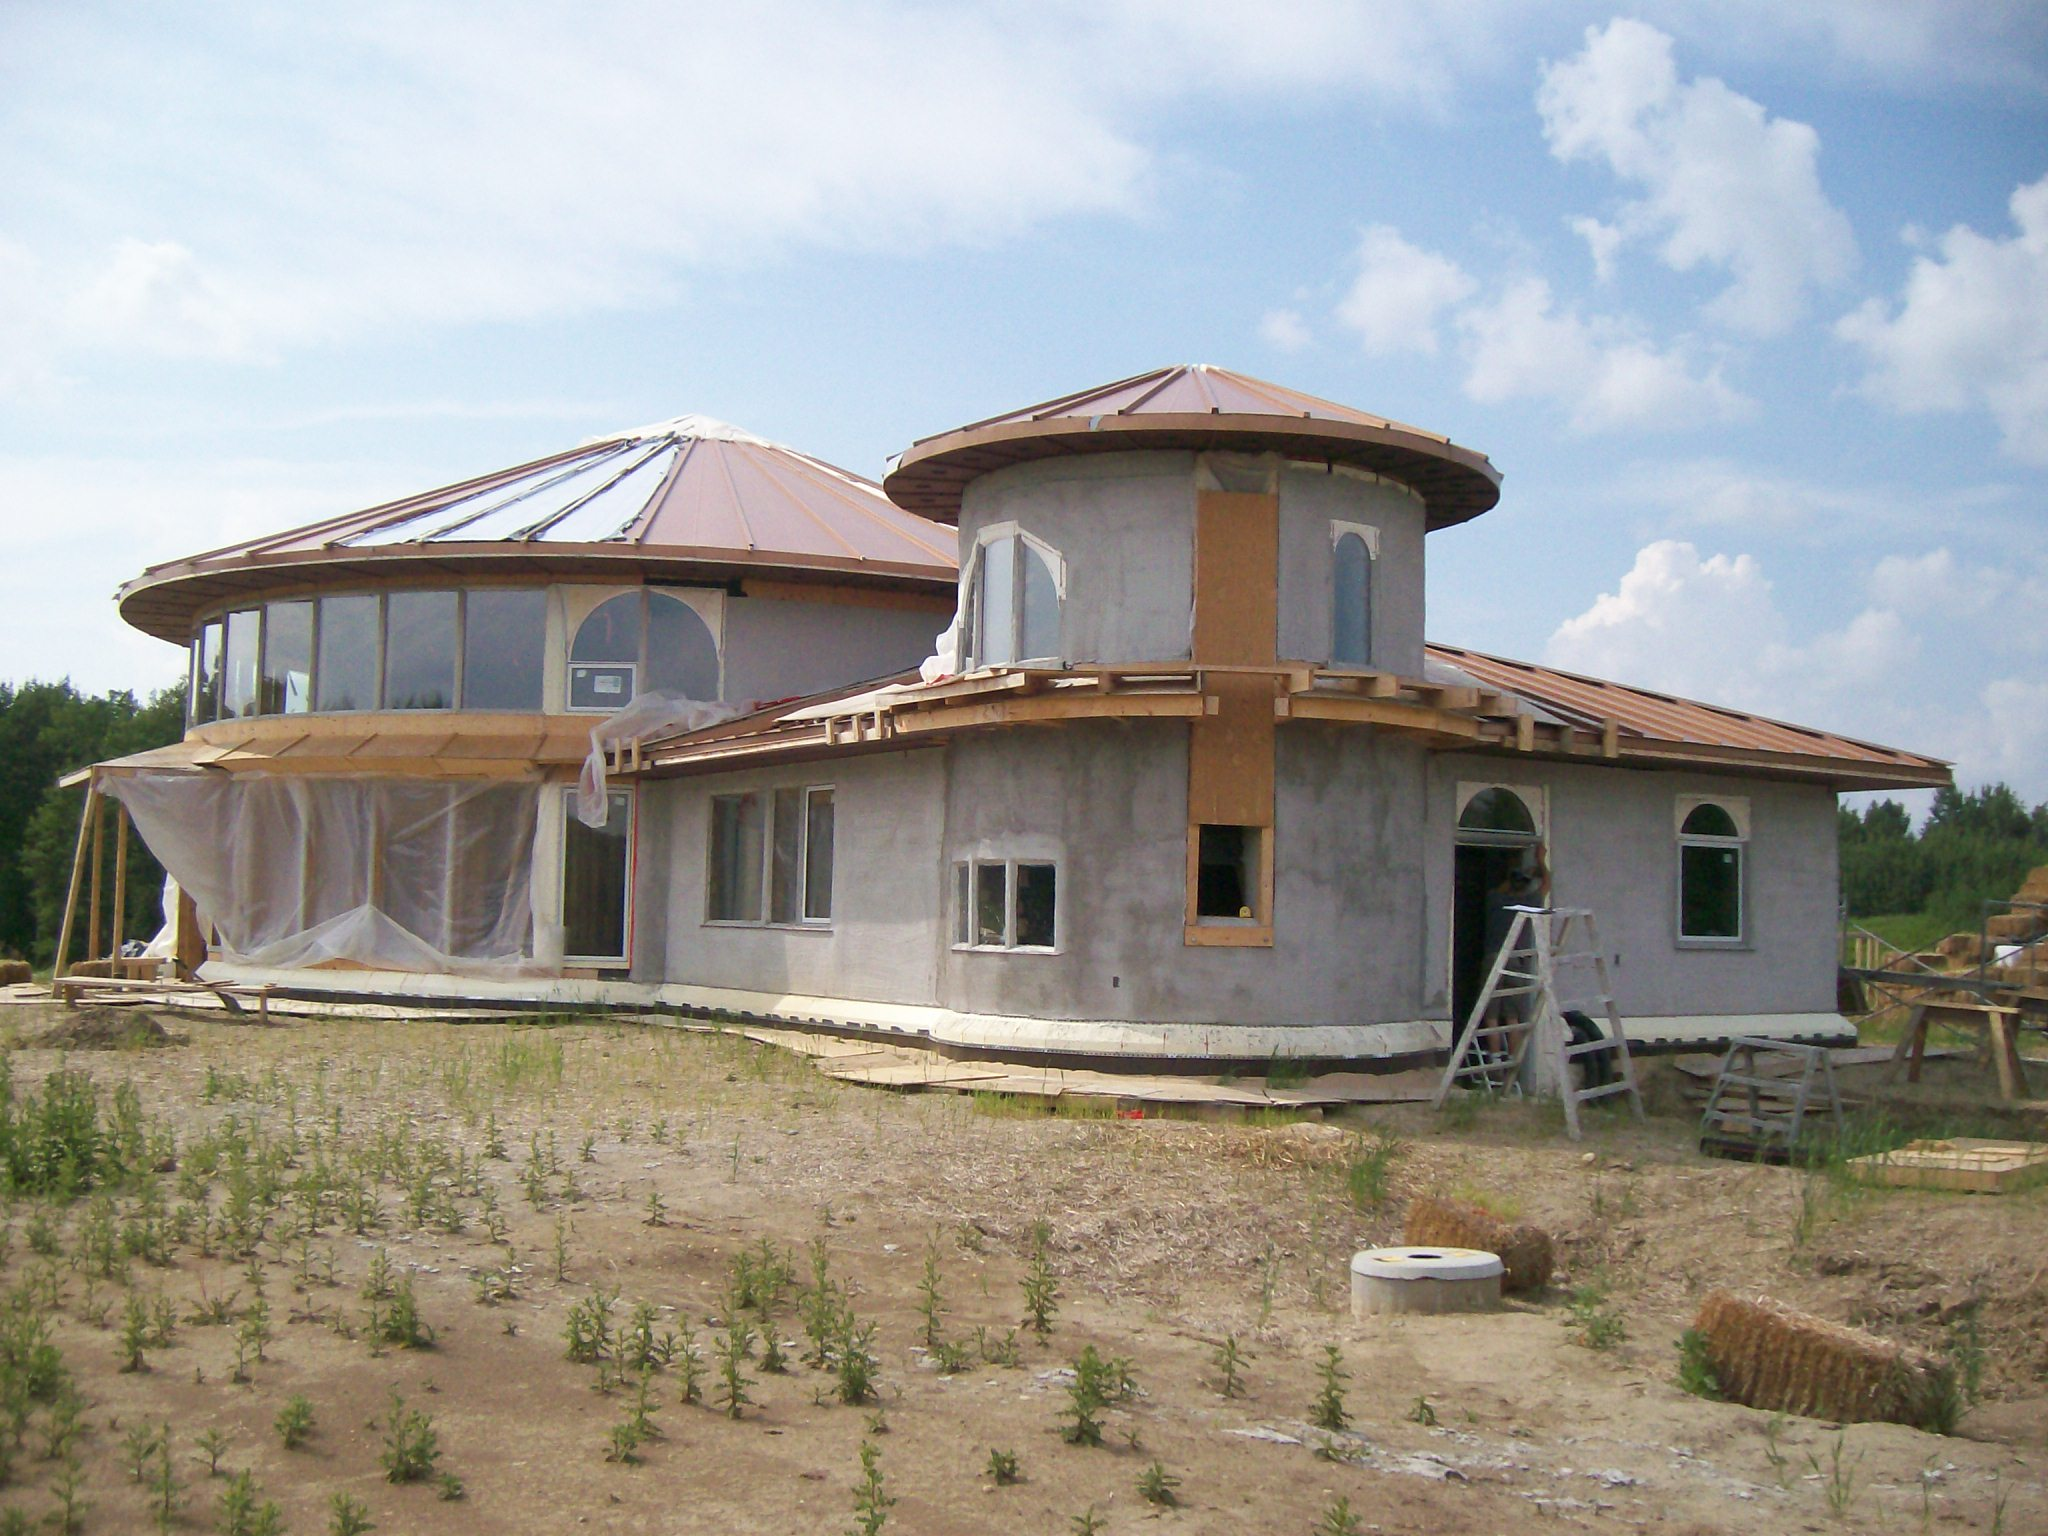 Solar Dragon House - Second coat of stucco